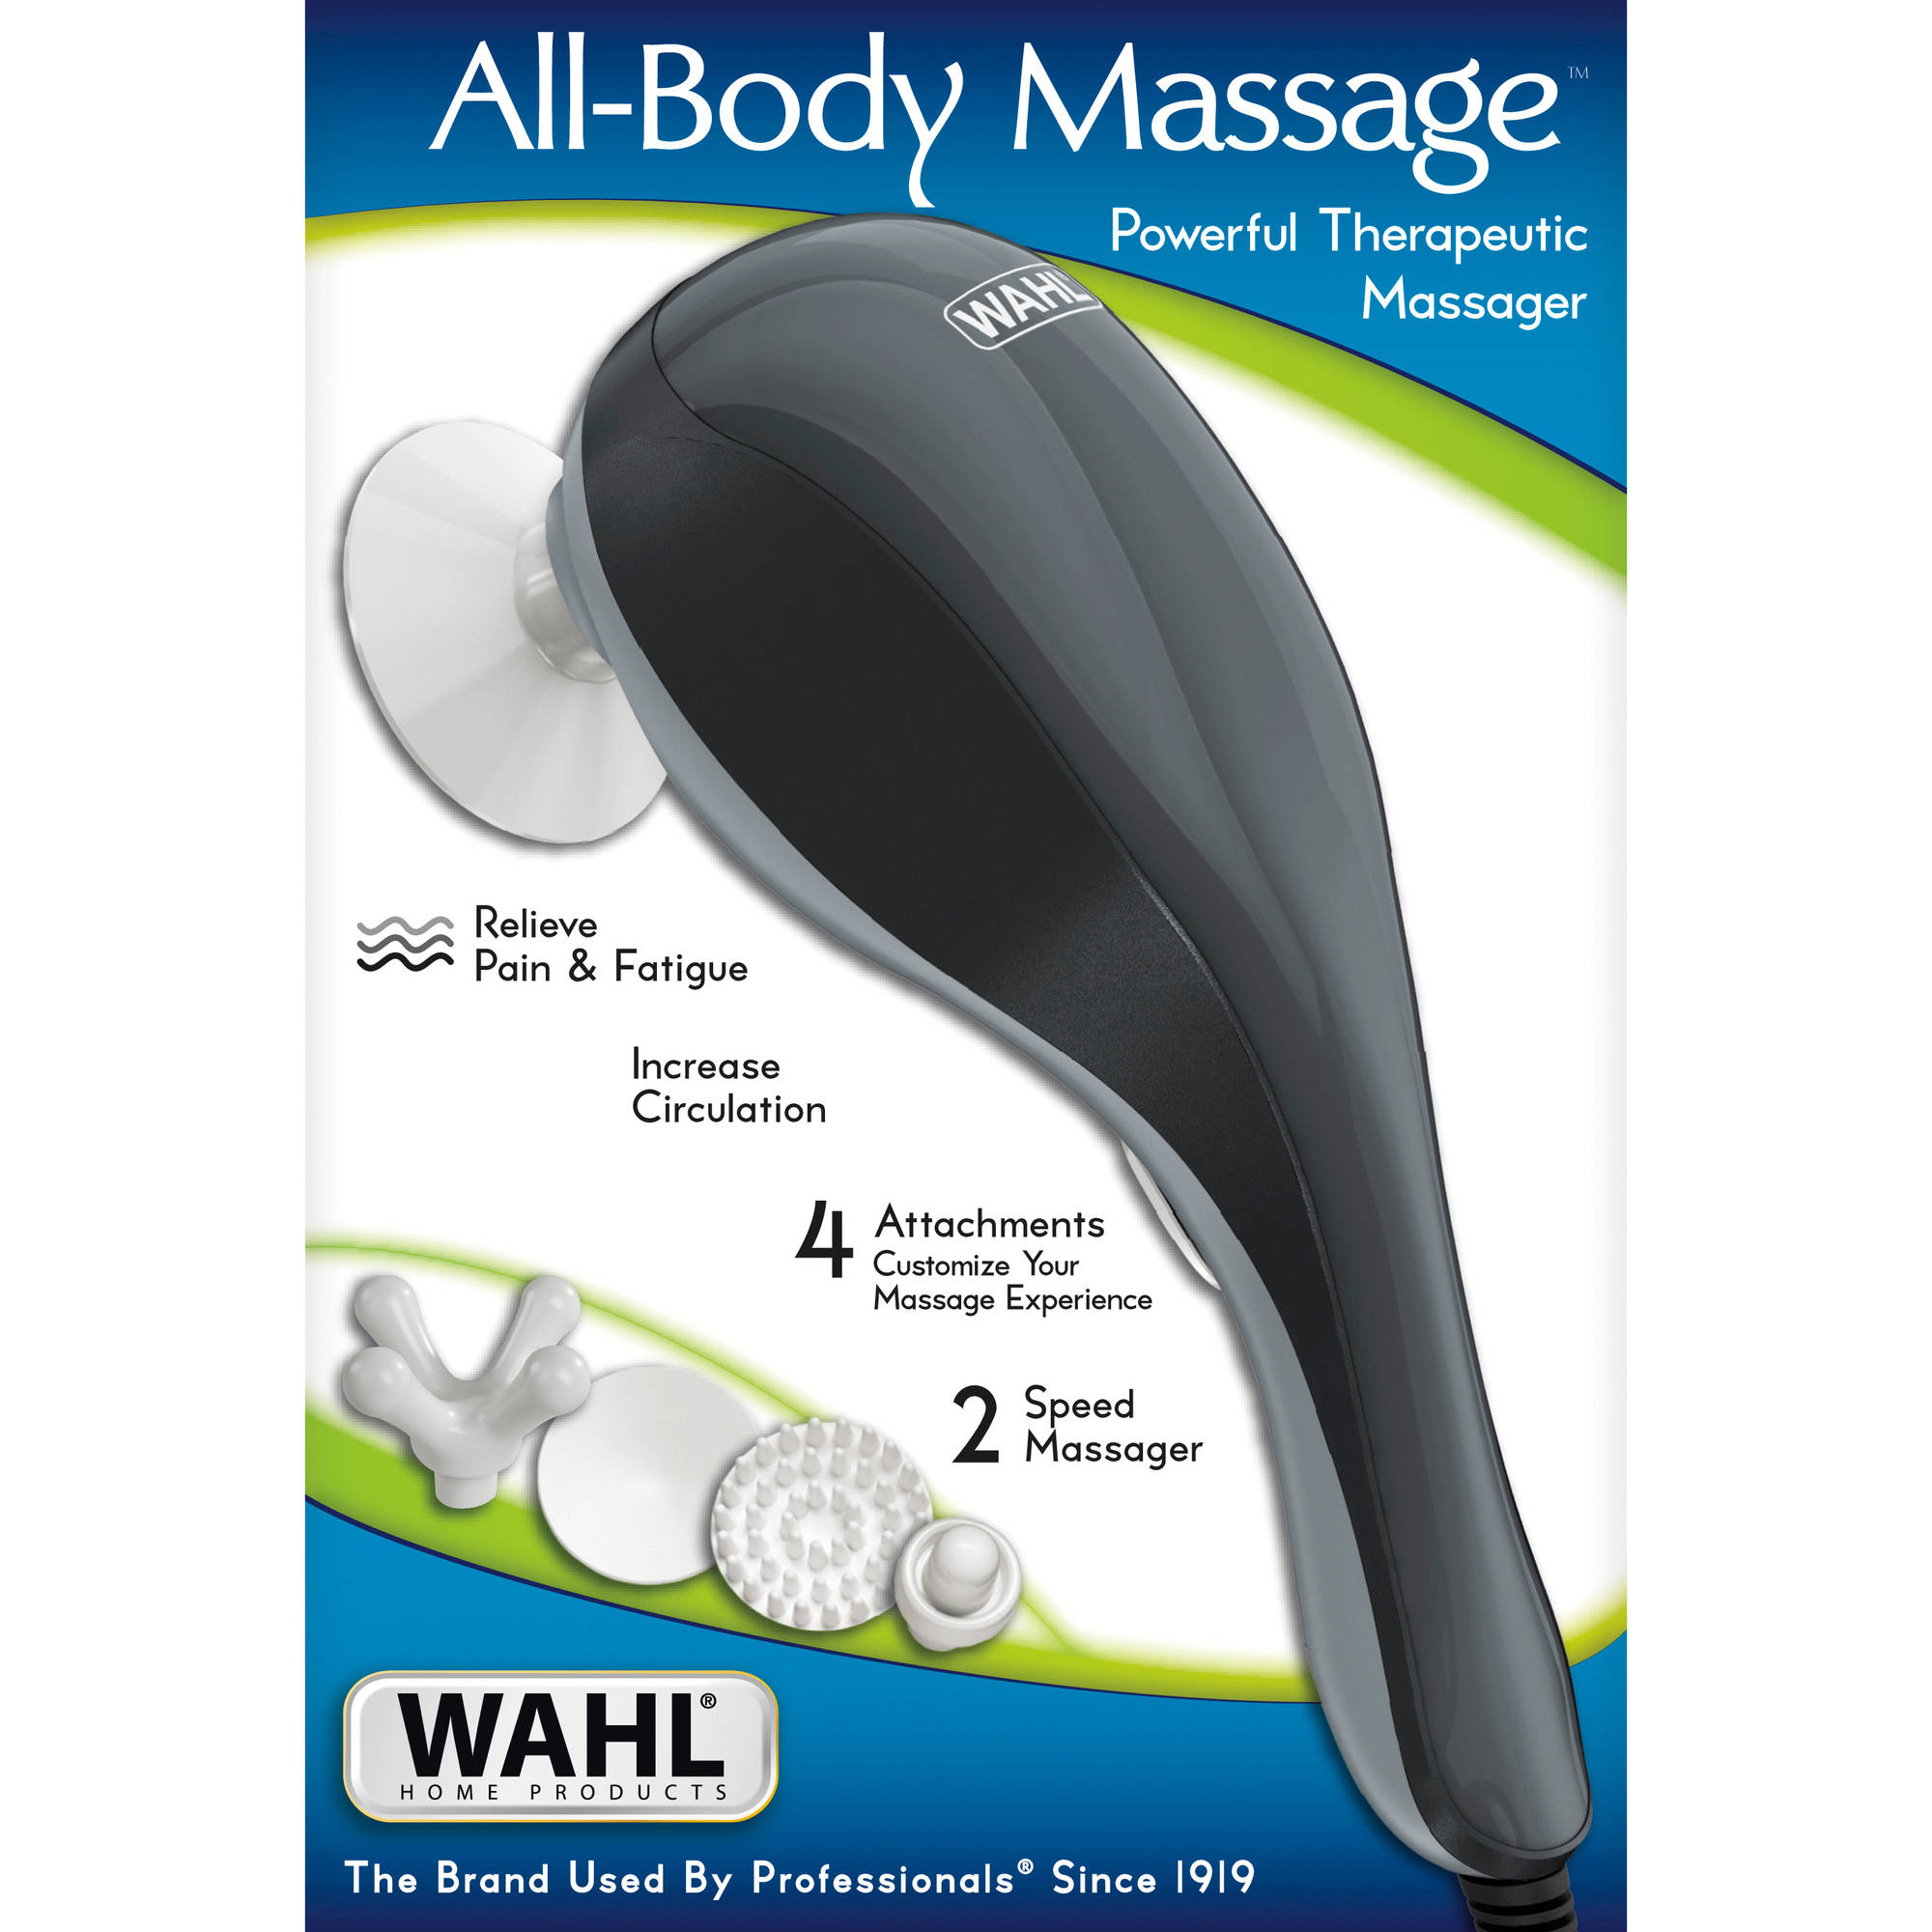 WAHL All Body Therapeutic Massager, Model 4120-600